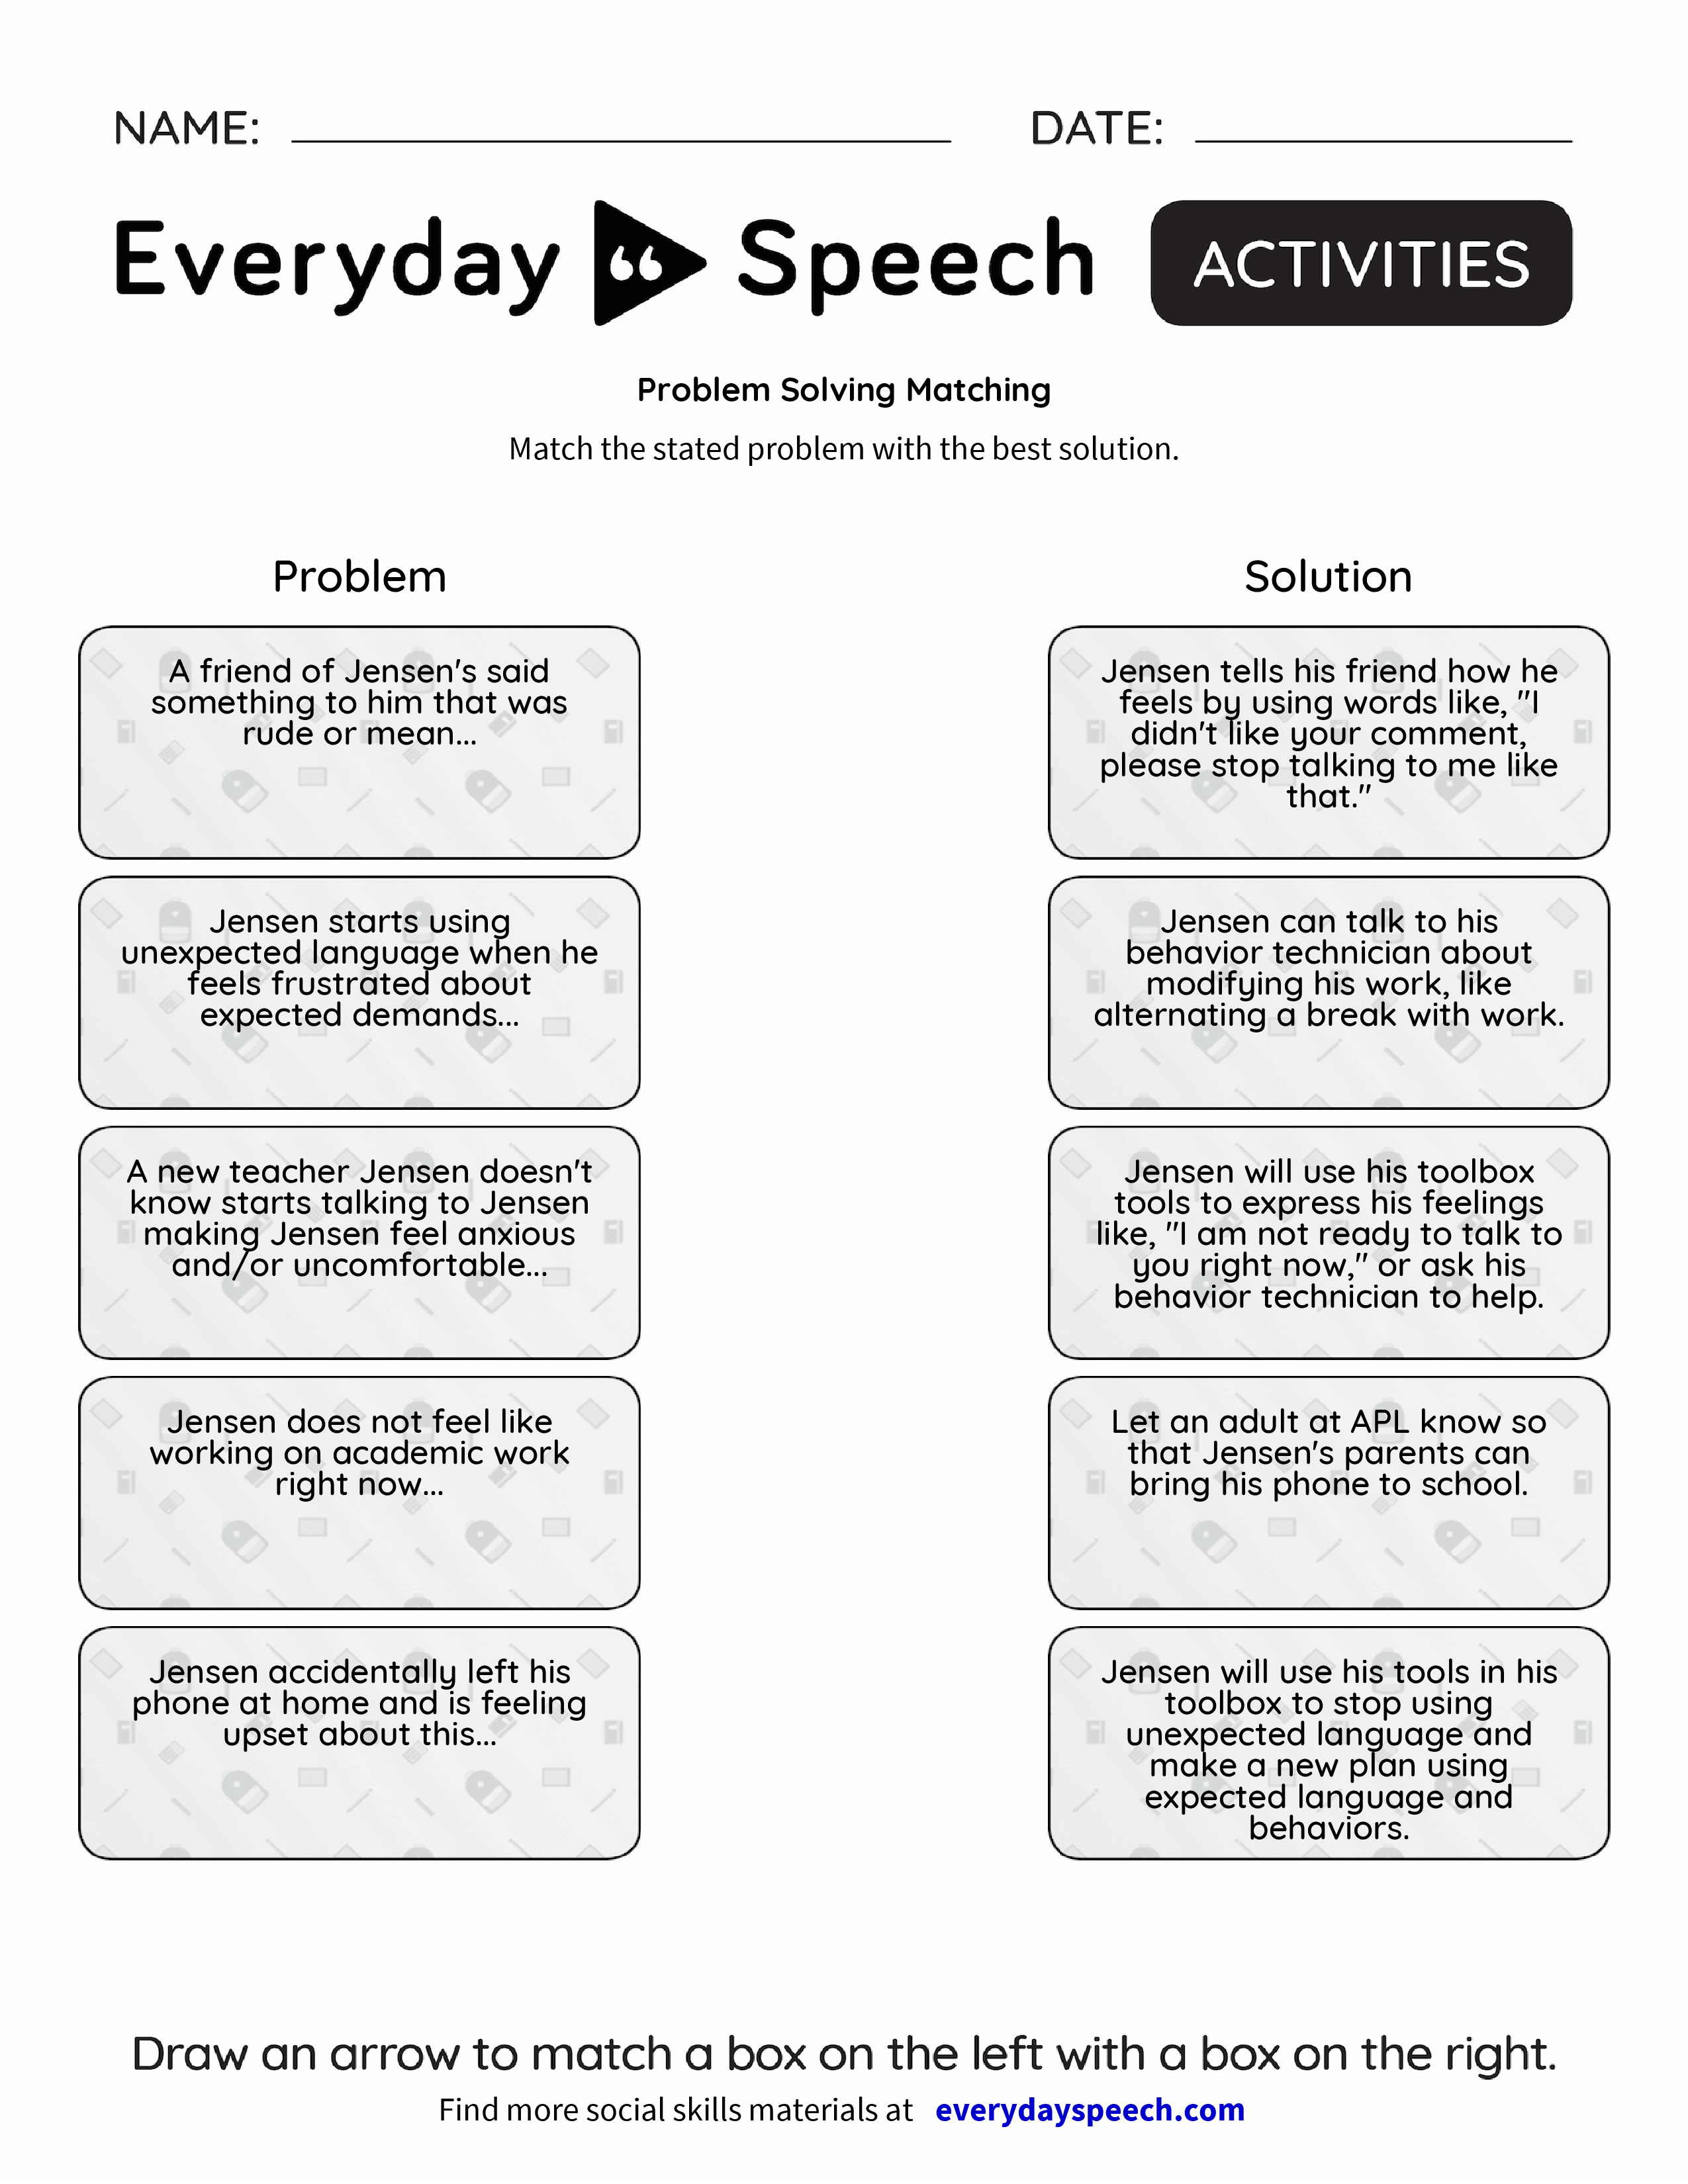 Problem Solving Matching Everyday Speech Everyday Speech